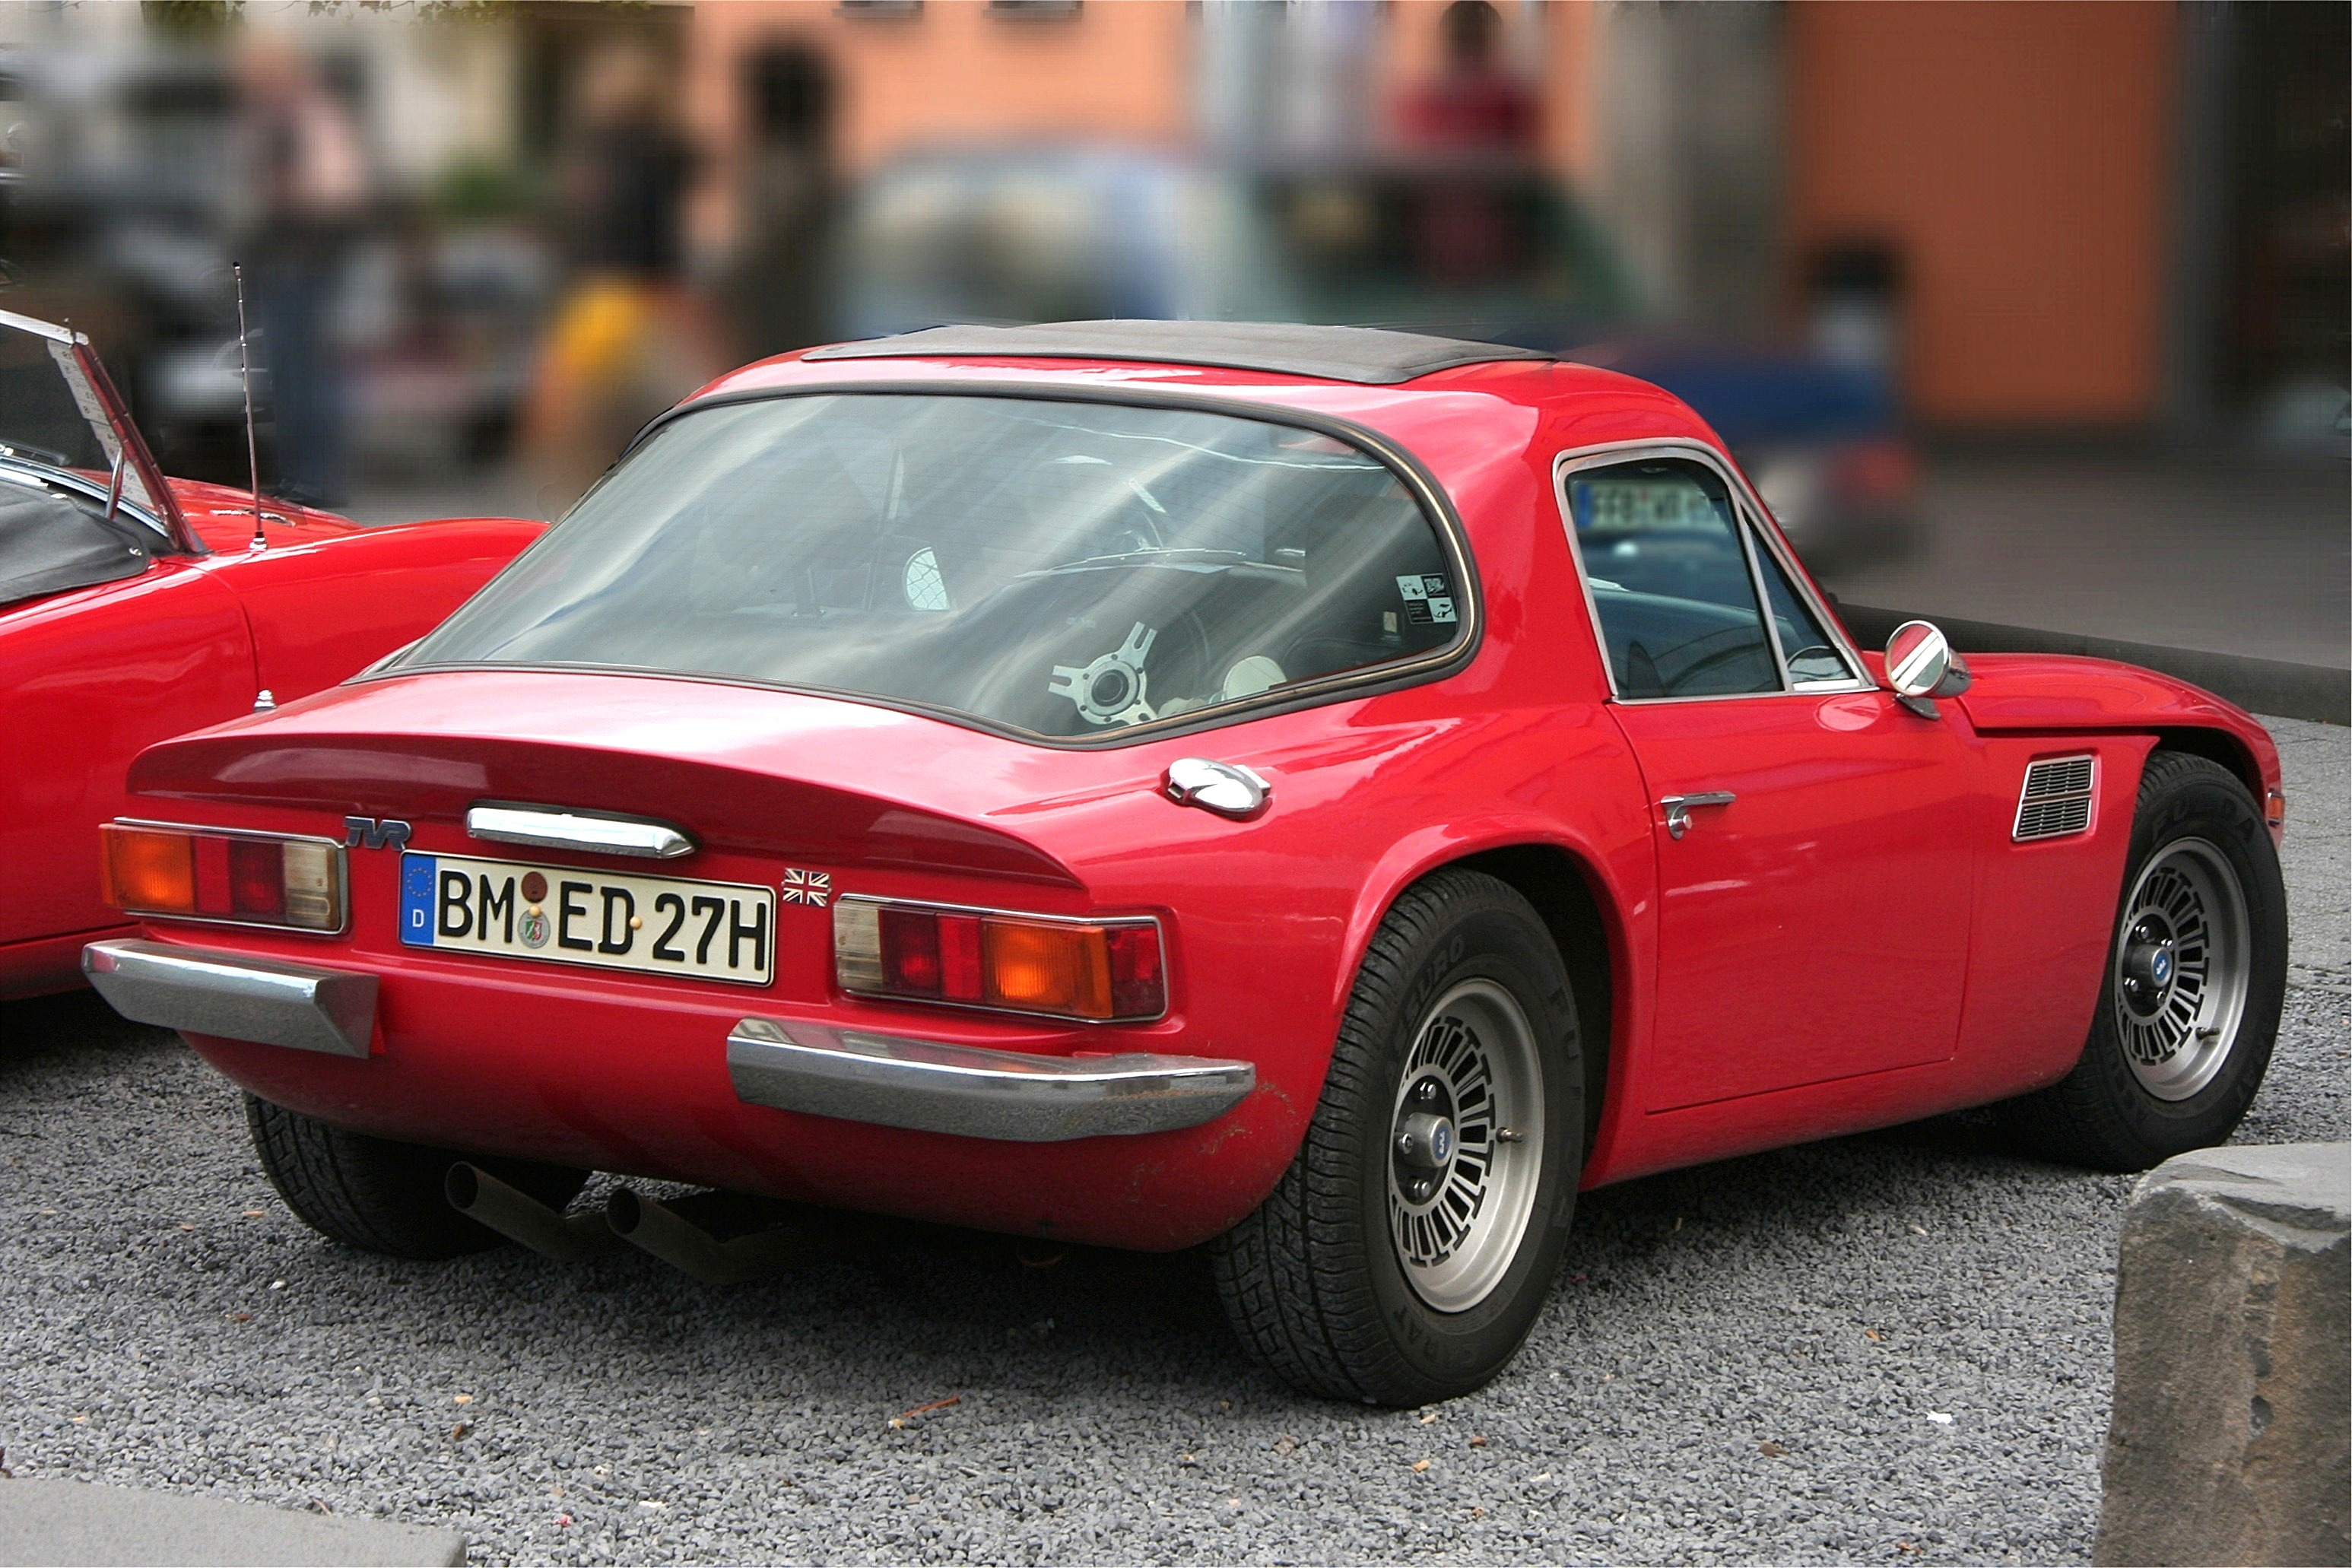 Tvr m photo - 8